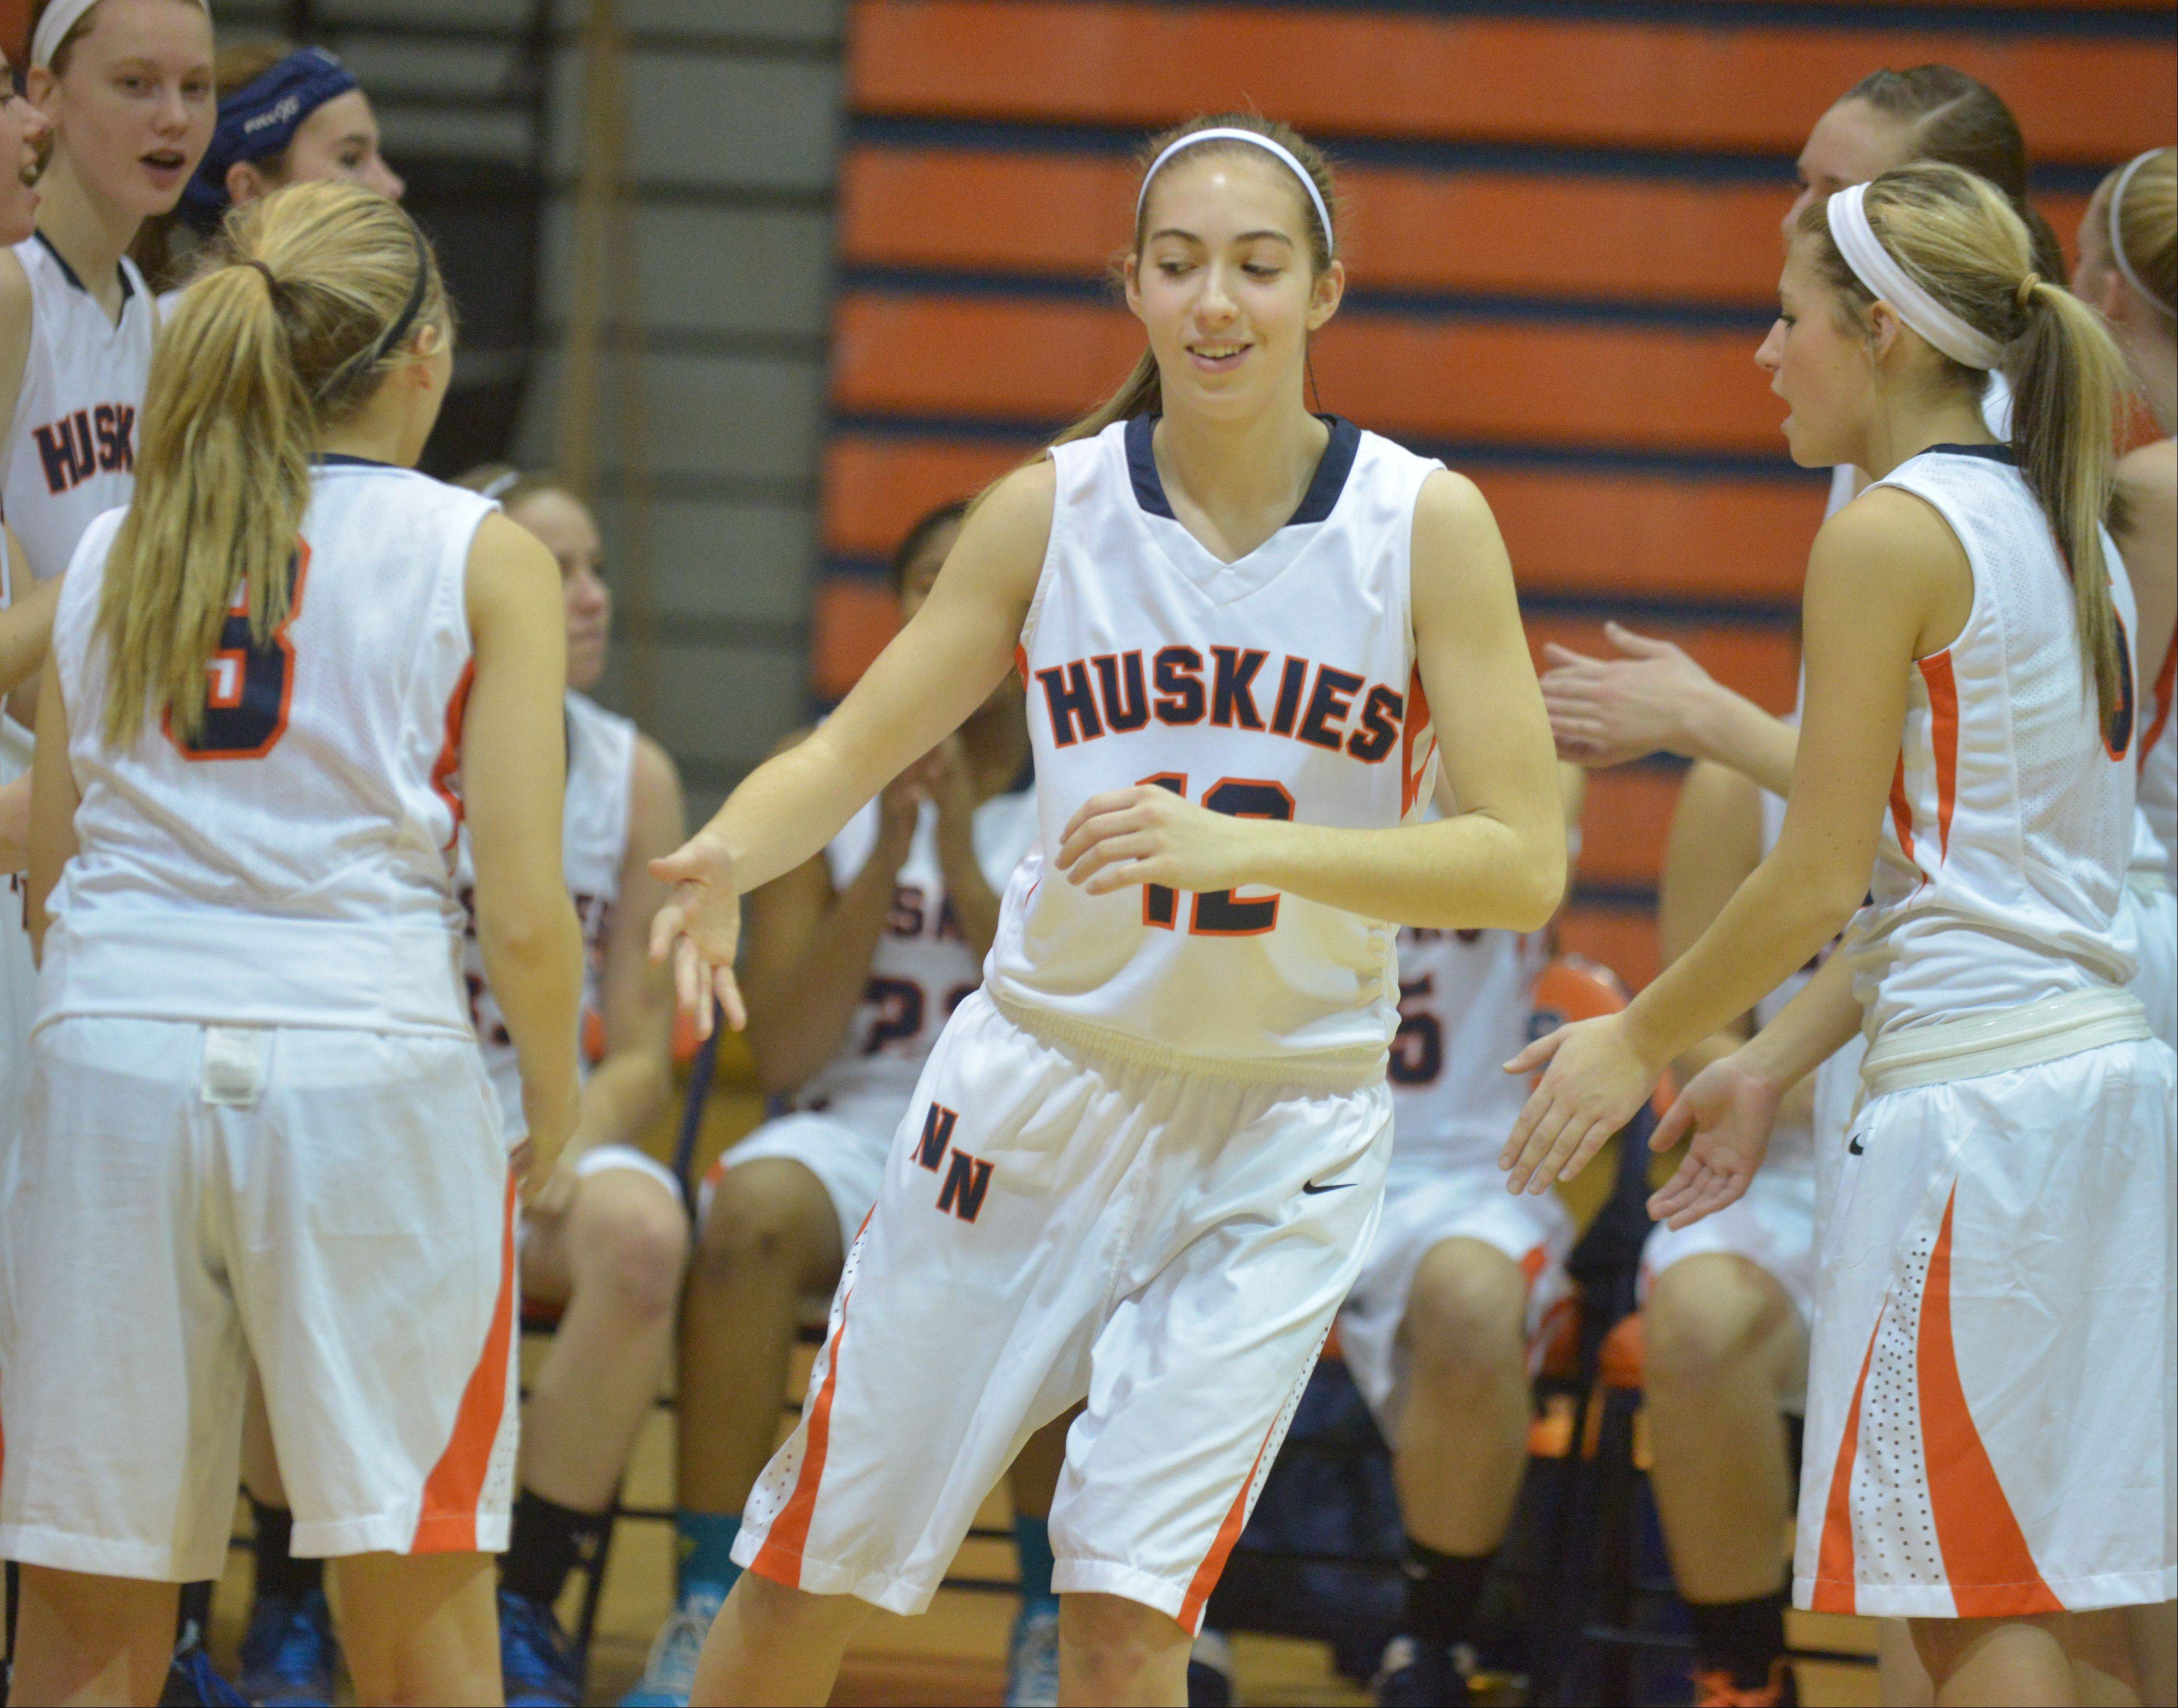 Images: Wheaton Warrenville South vs. Naperville North girls basketball